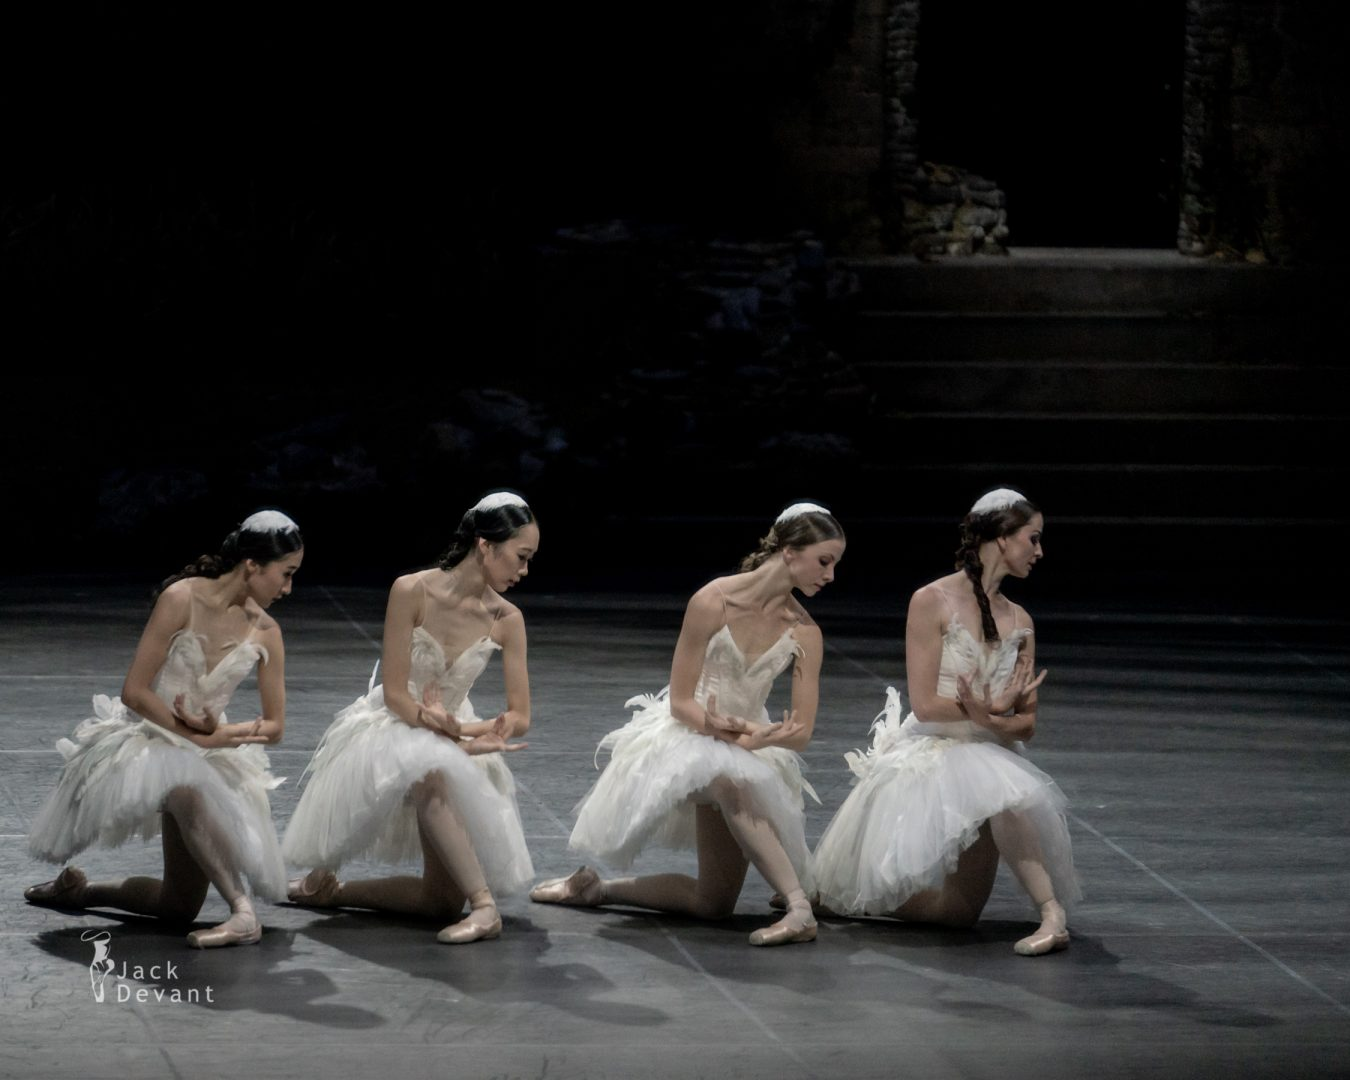 Four Cygnets in Swan Lake act 2 3